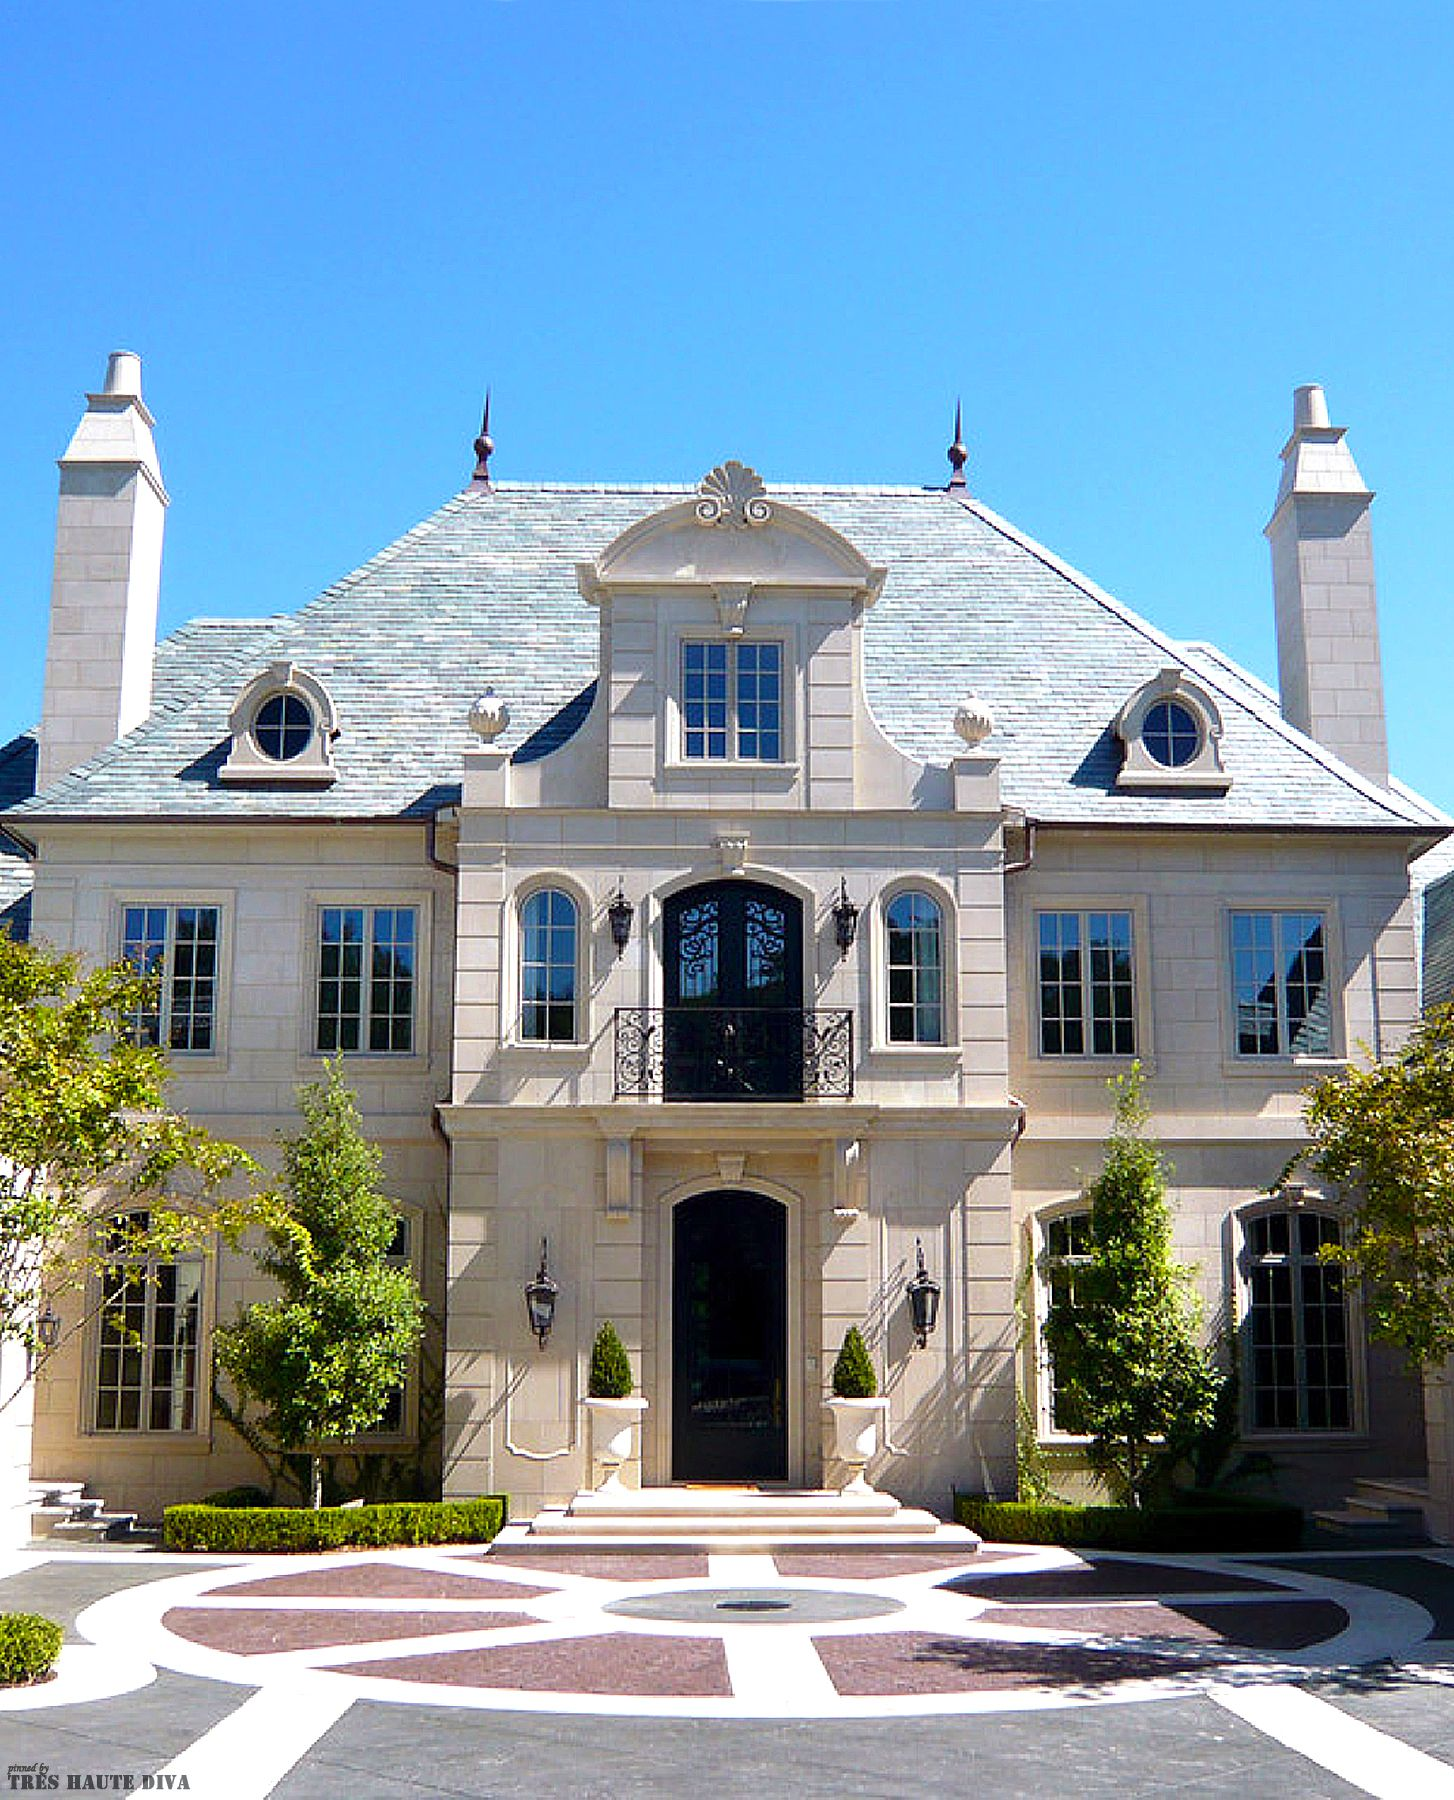 Classic french chateau style exterior architecture Estate home designs